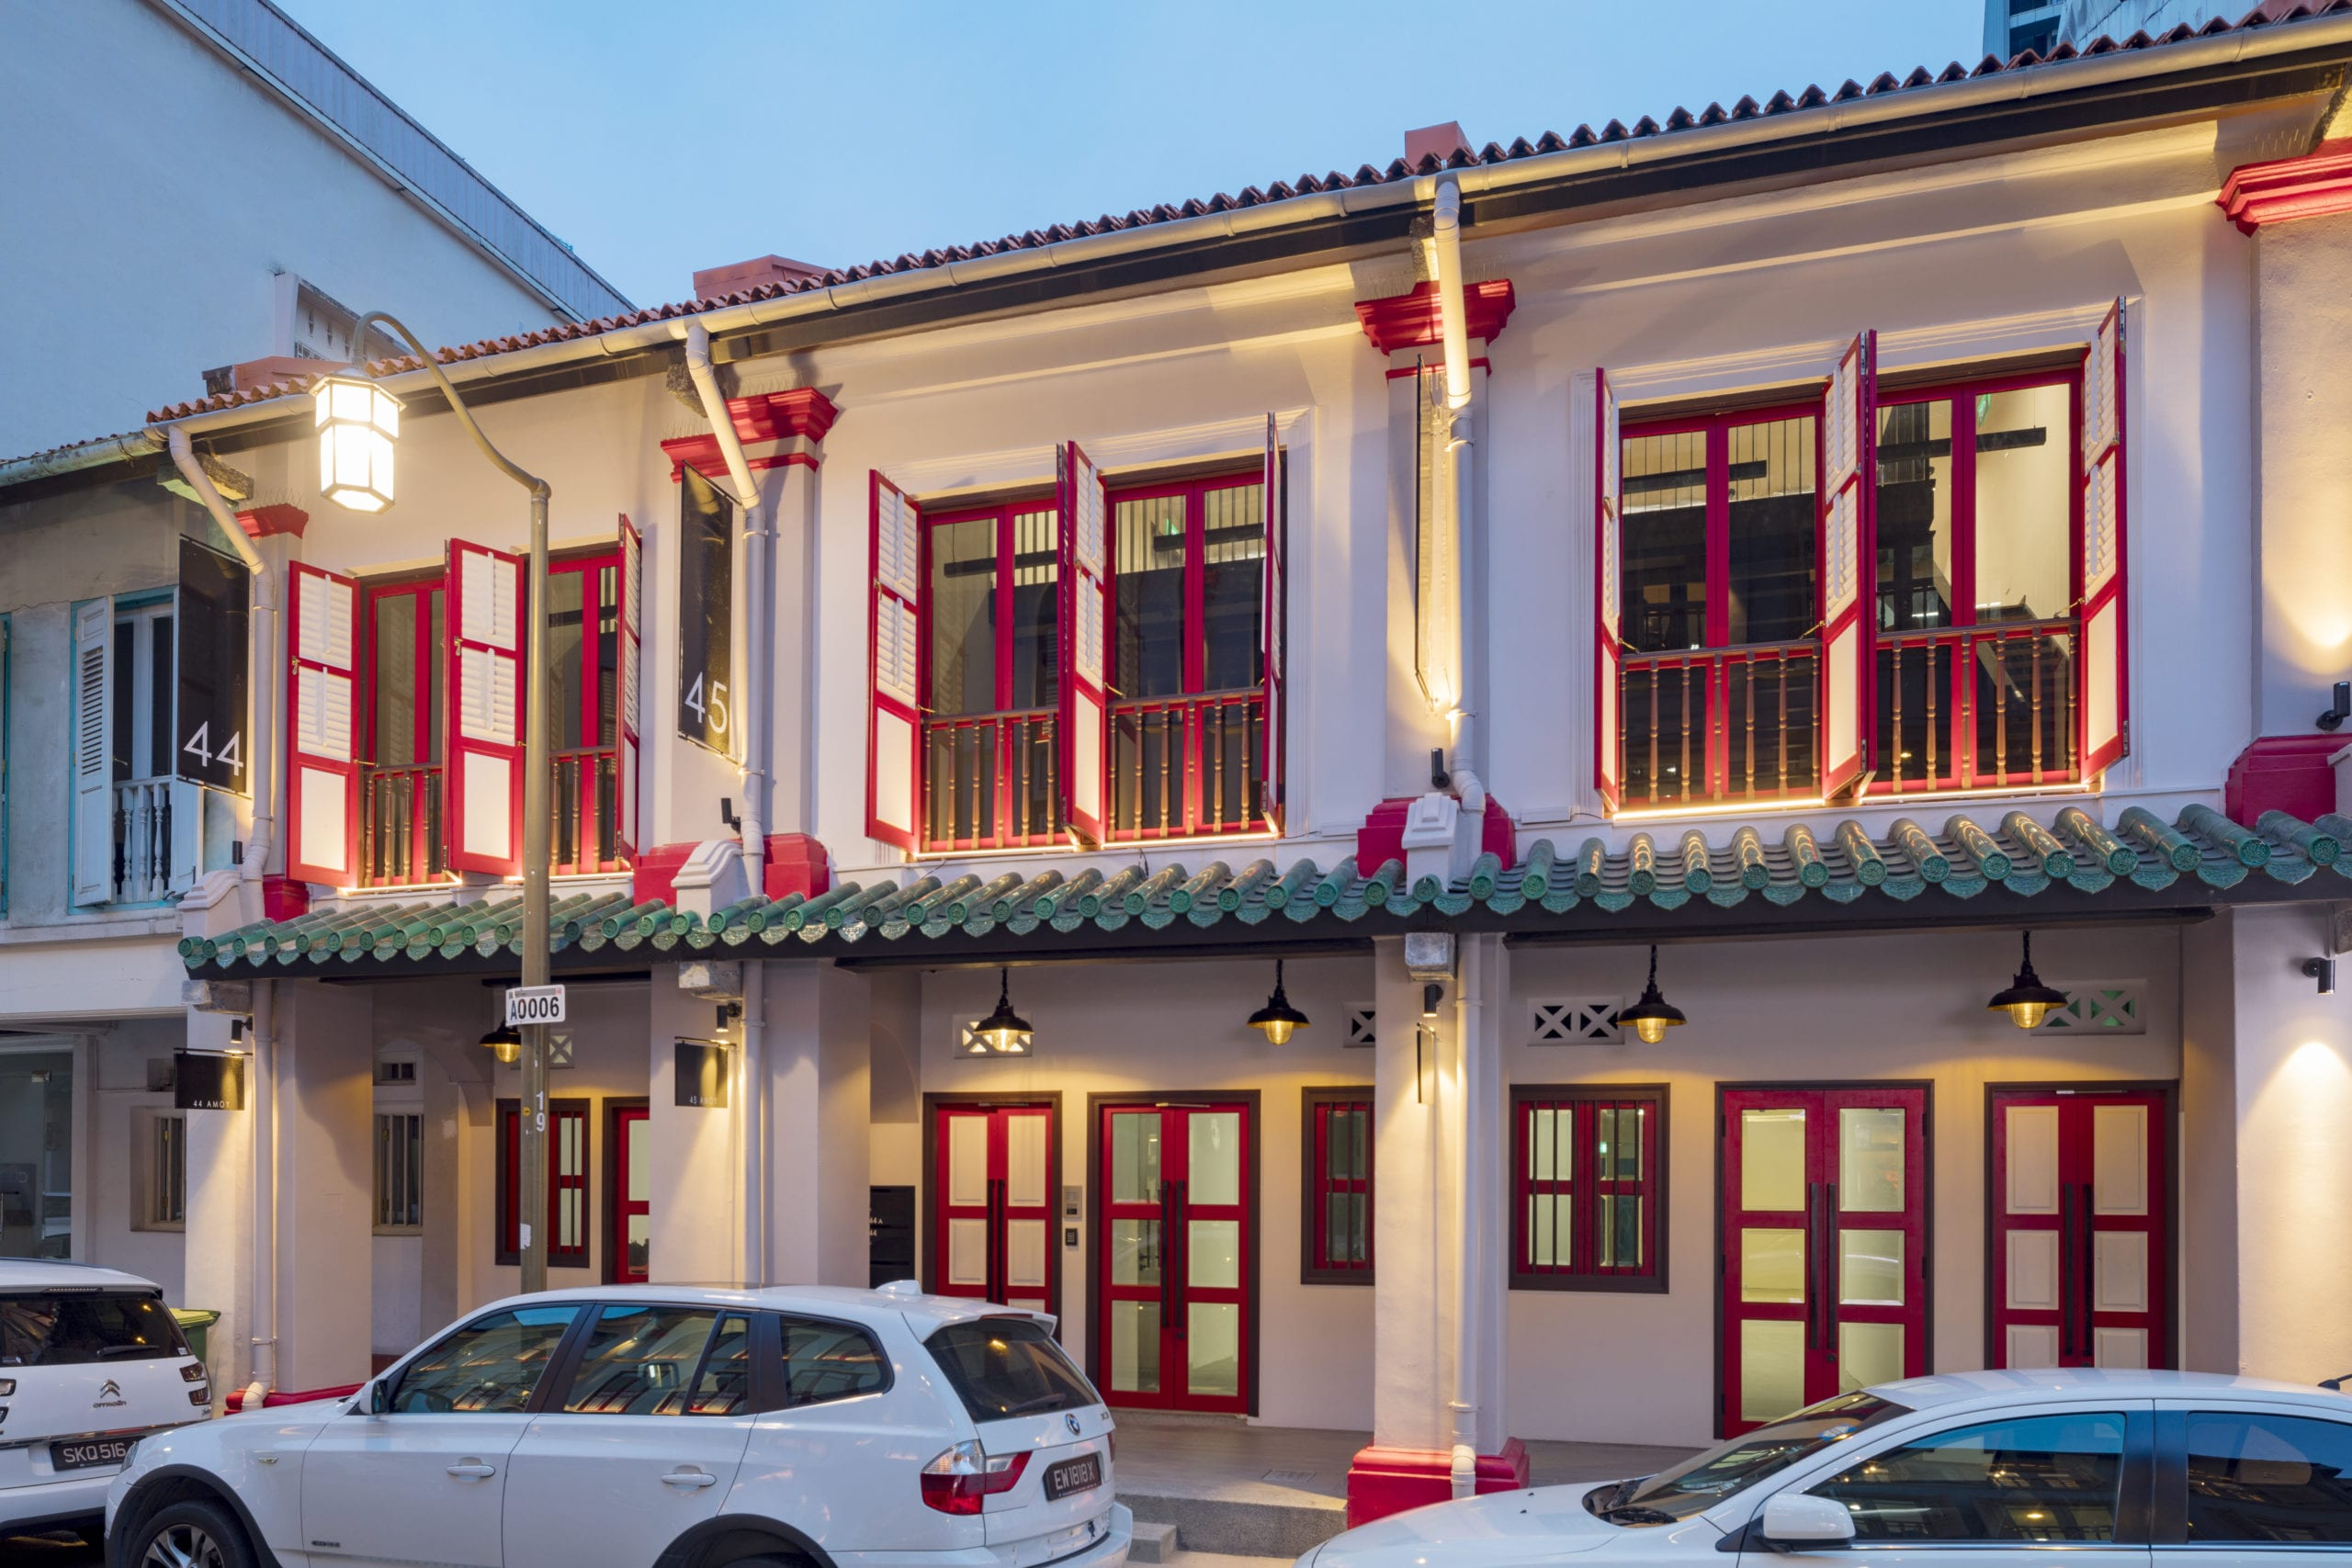 SilkRoad Property Partners is pleased to announce that it recently fully exited its investment in 44-46 Amoy Street, Singapore.